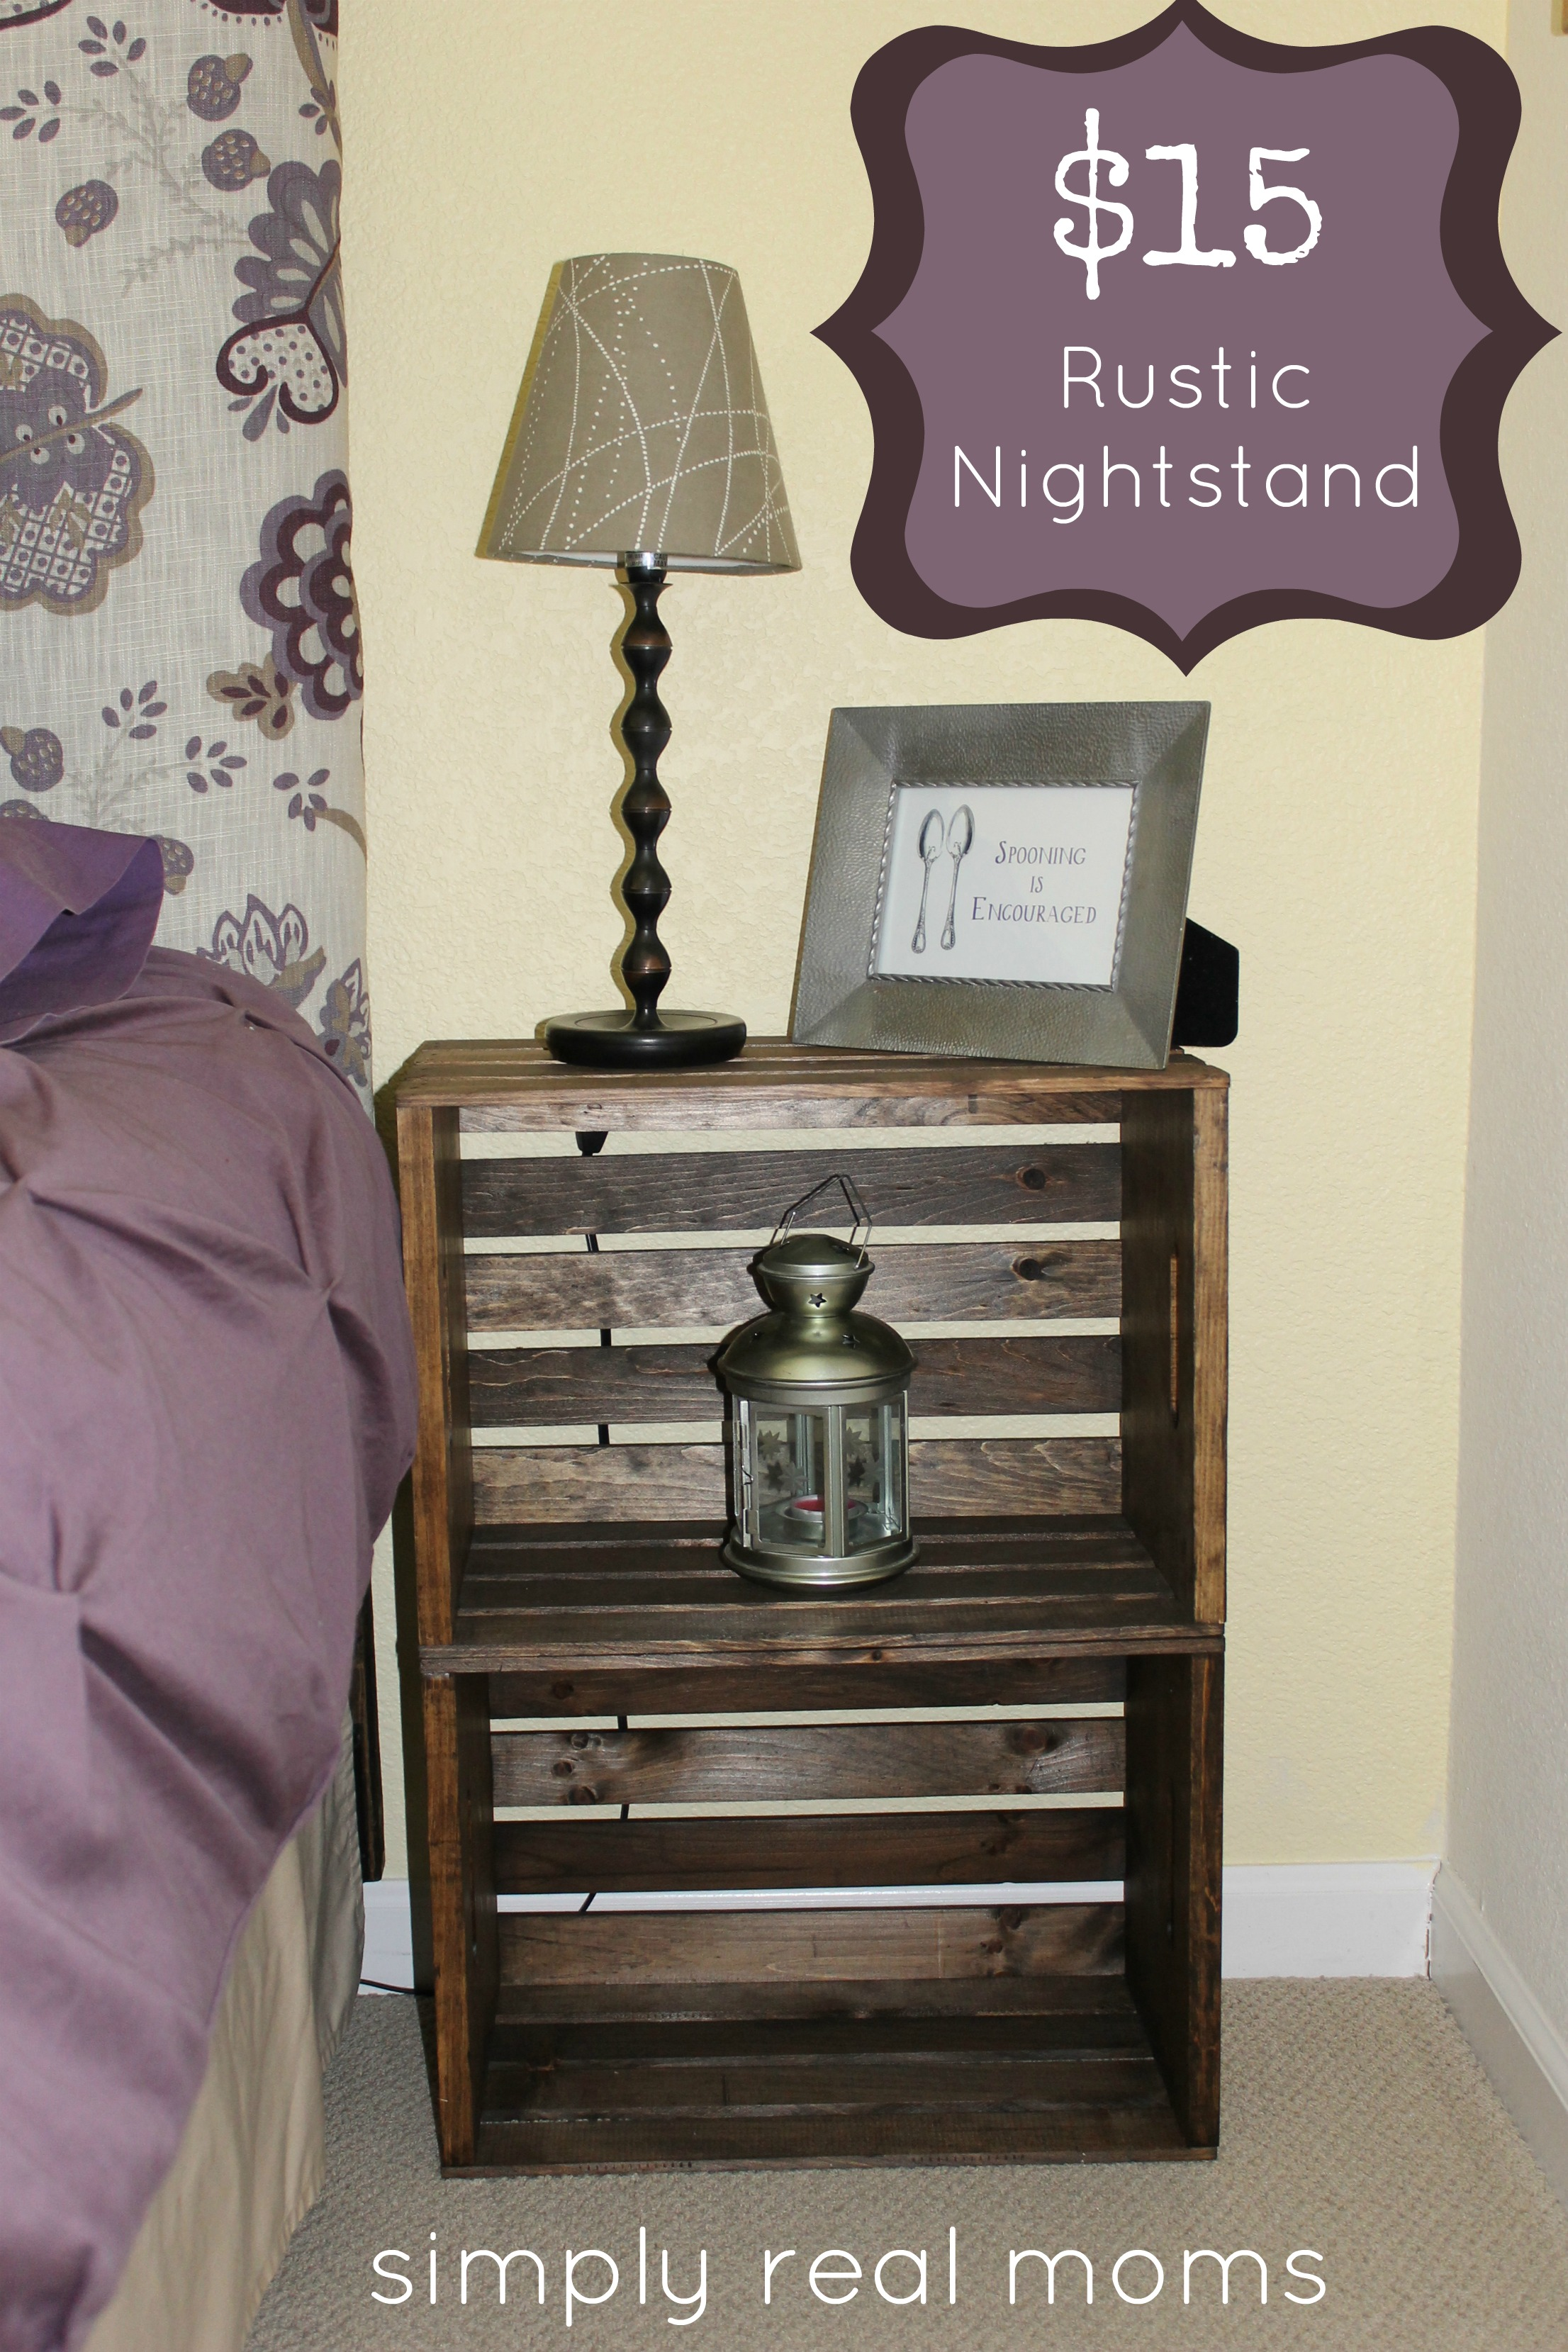 Inspire Your Home with Charming Rustic Nightstand: Incredible Rustic Nightstand Inspiration | Fancy Willow Bedside Table